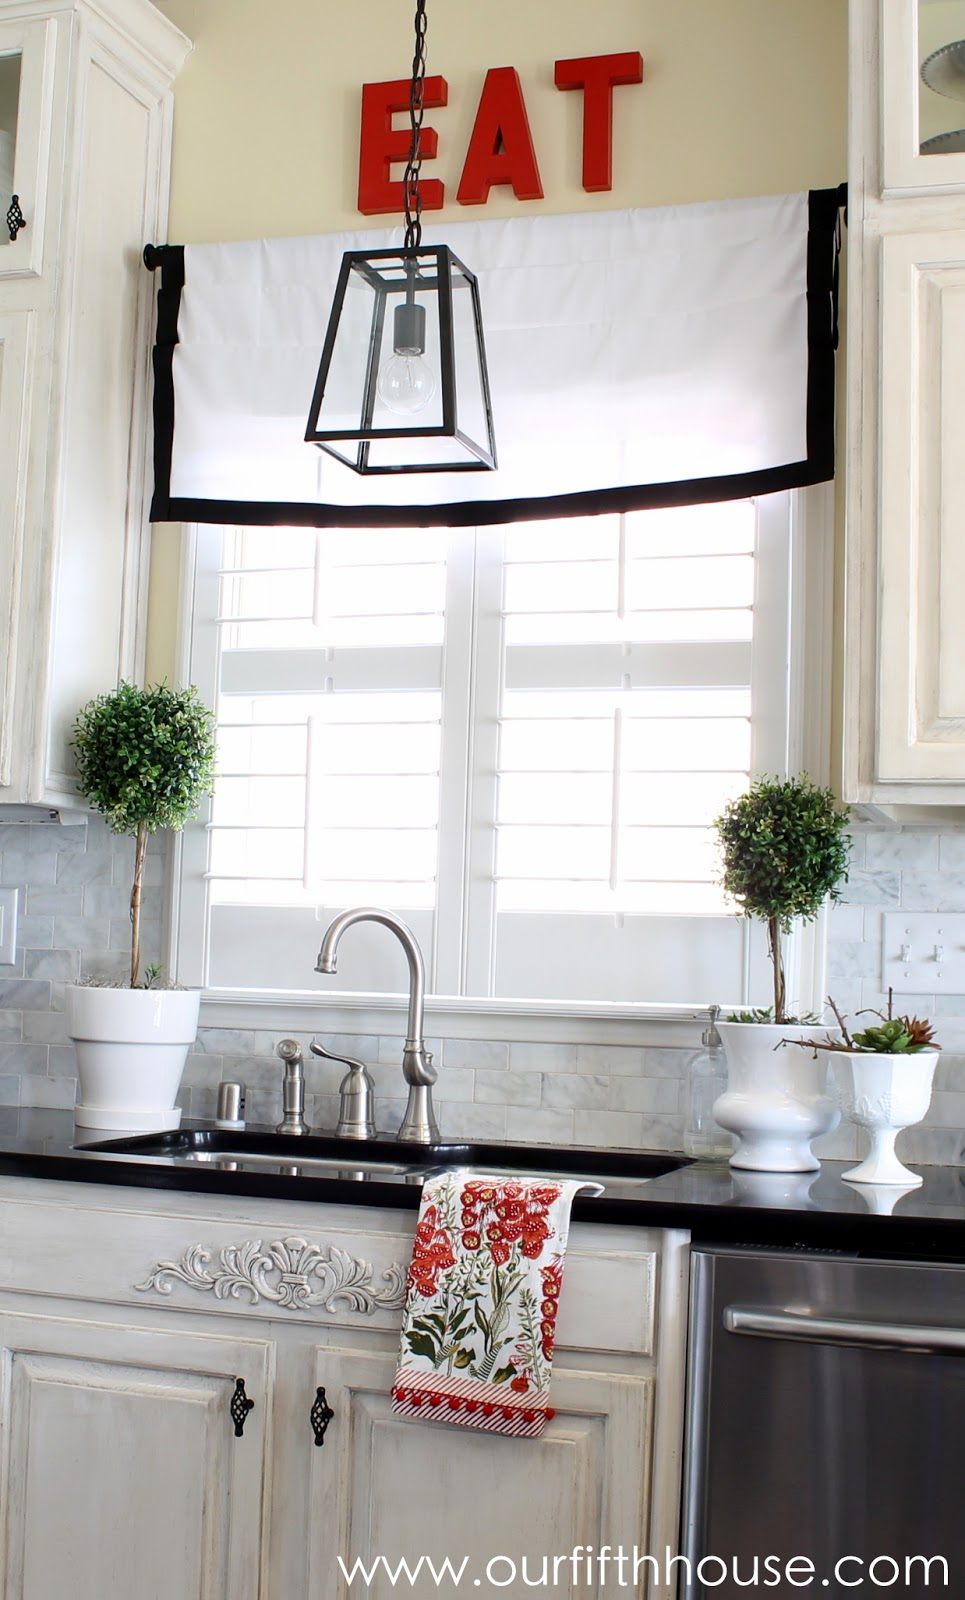 lighting kitchen sink kitchen traditional. kitchen lighting sink traditional